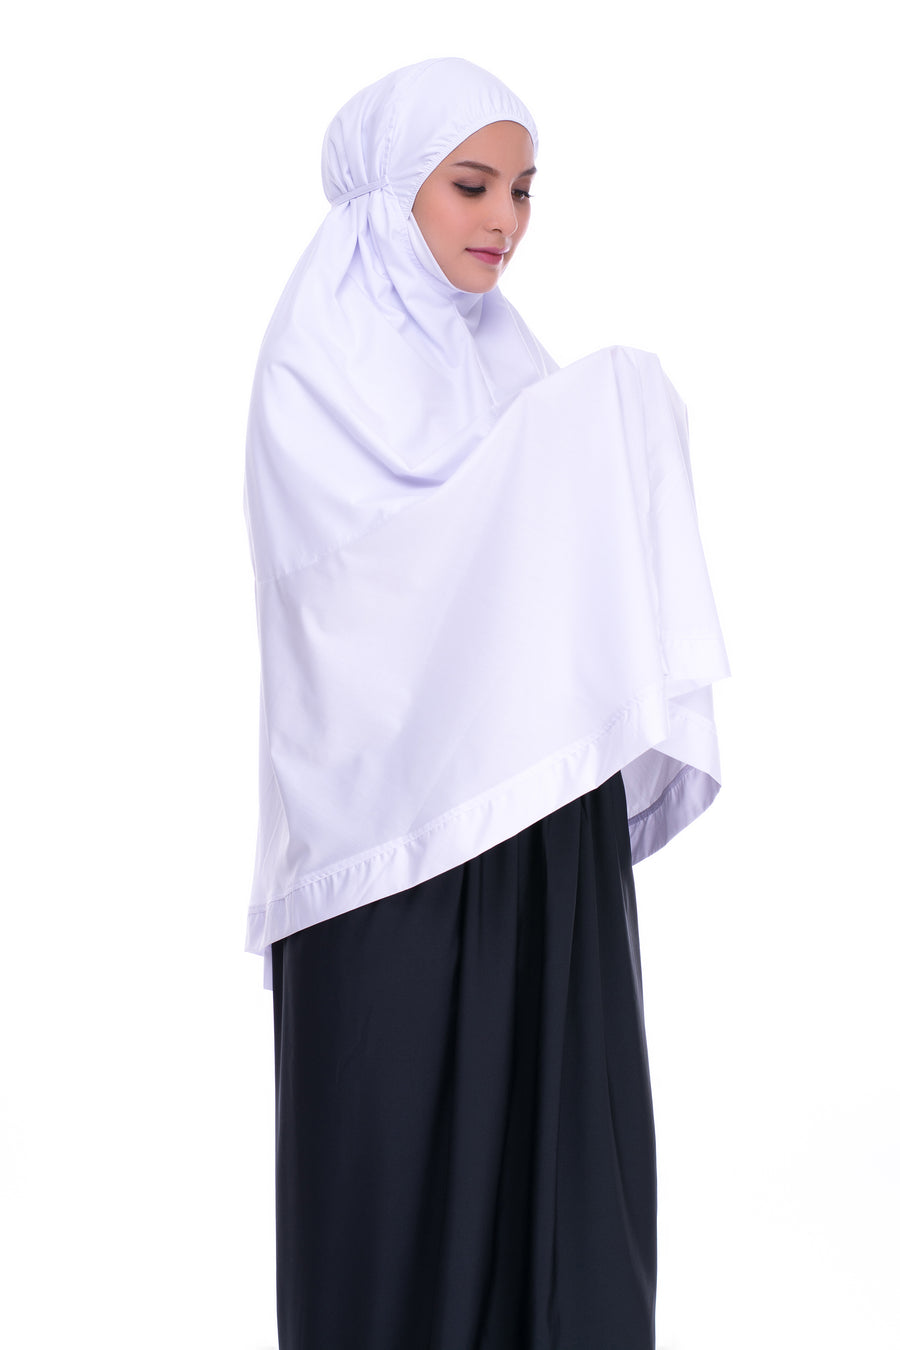 Telekung Mini Cotton with Pocket is made for those performing umrah or hajj.